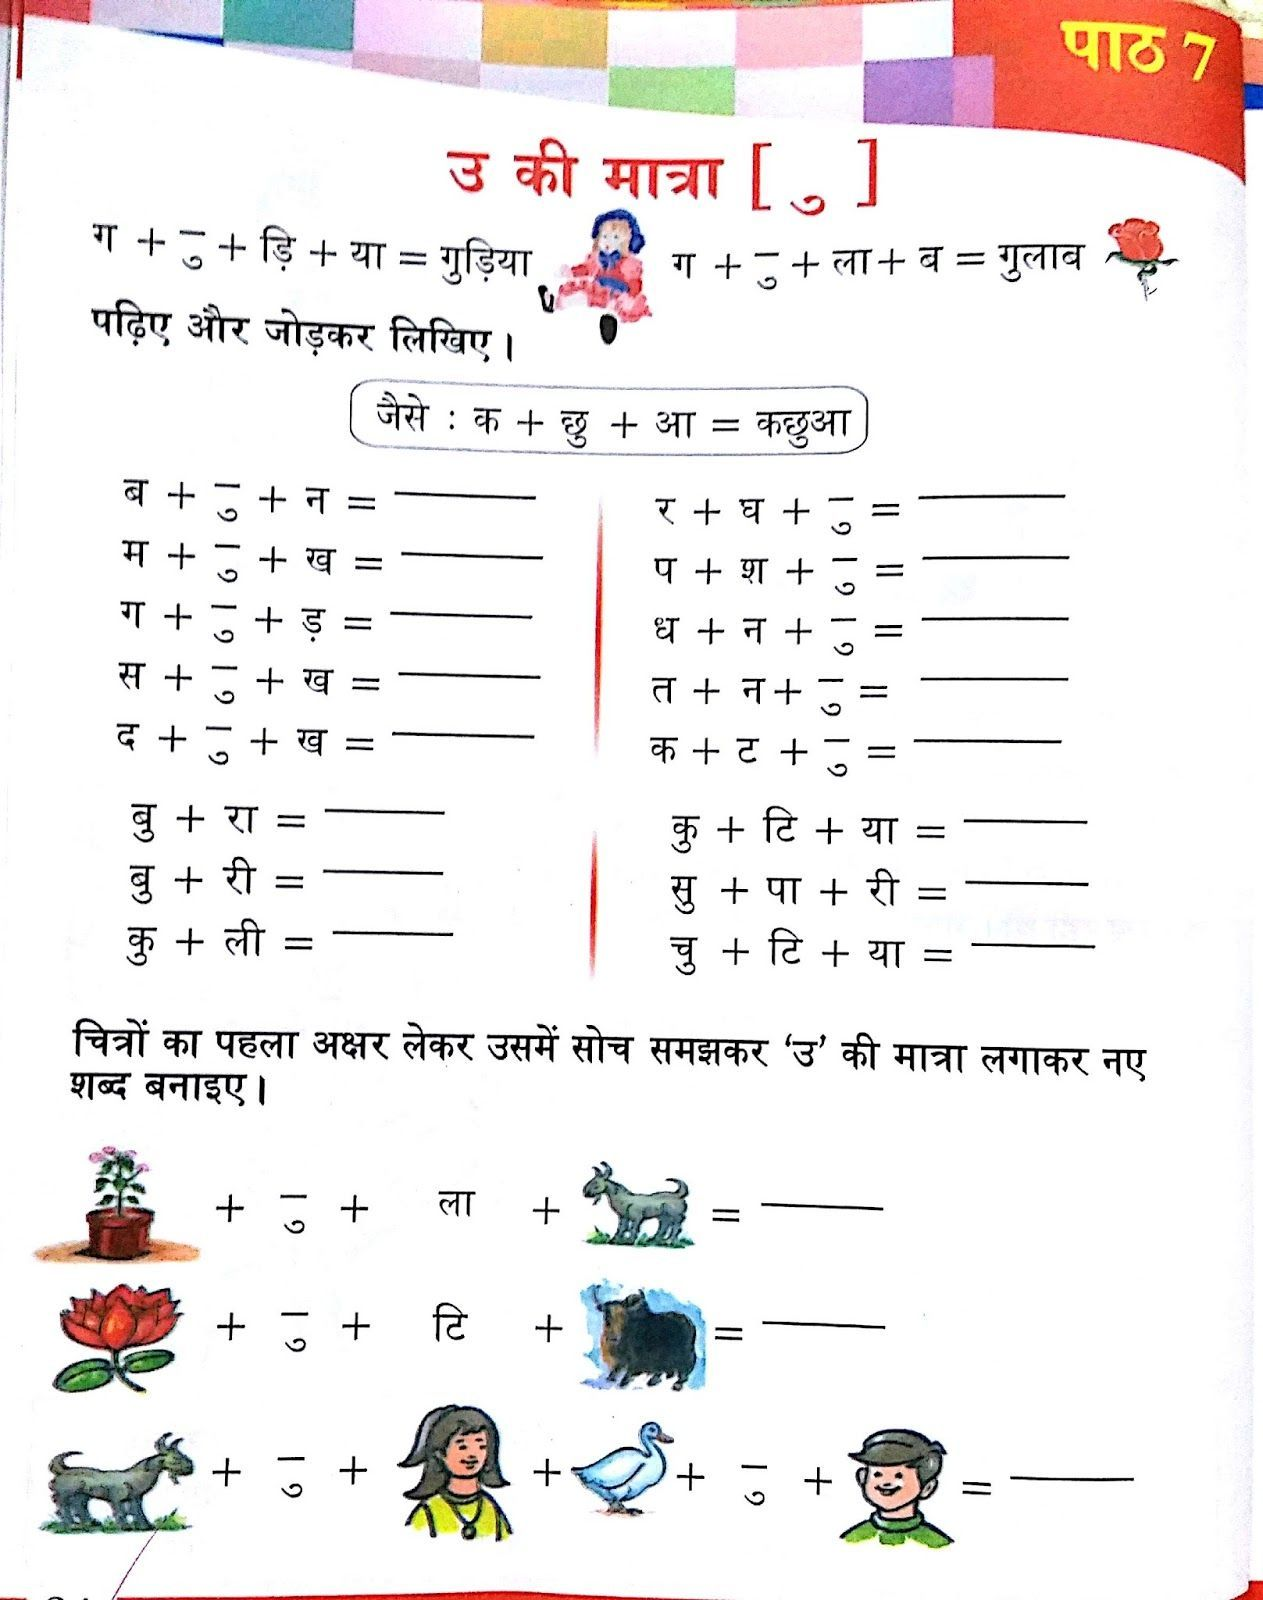 Tlm For Primary Classes Hindi Tlm For Primary Classes